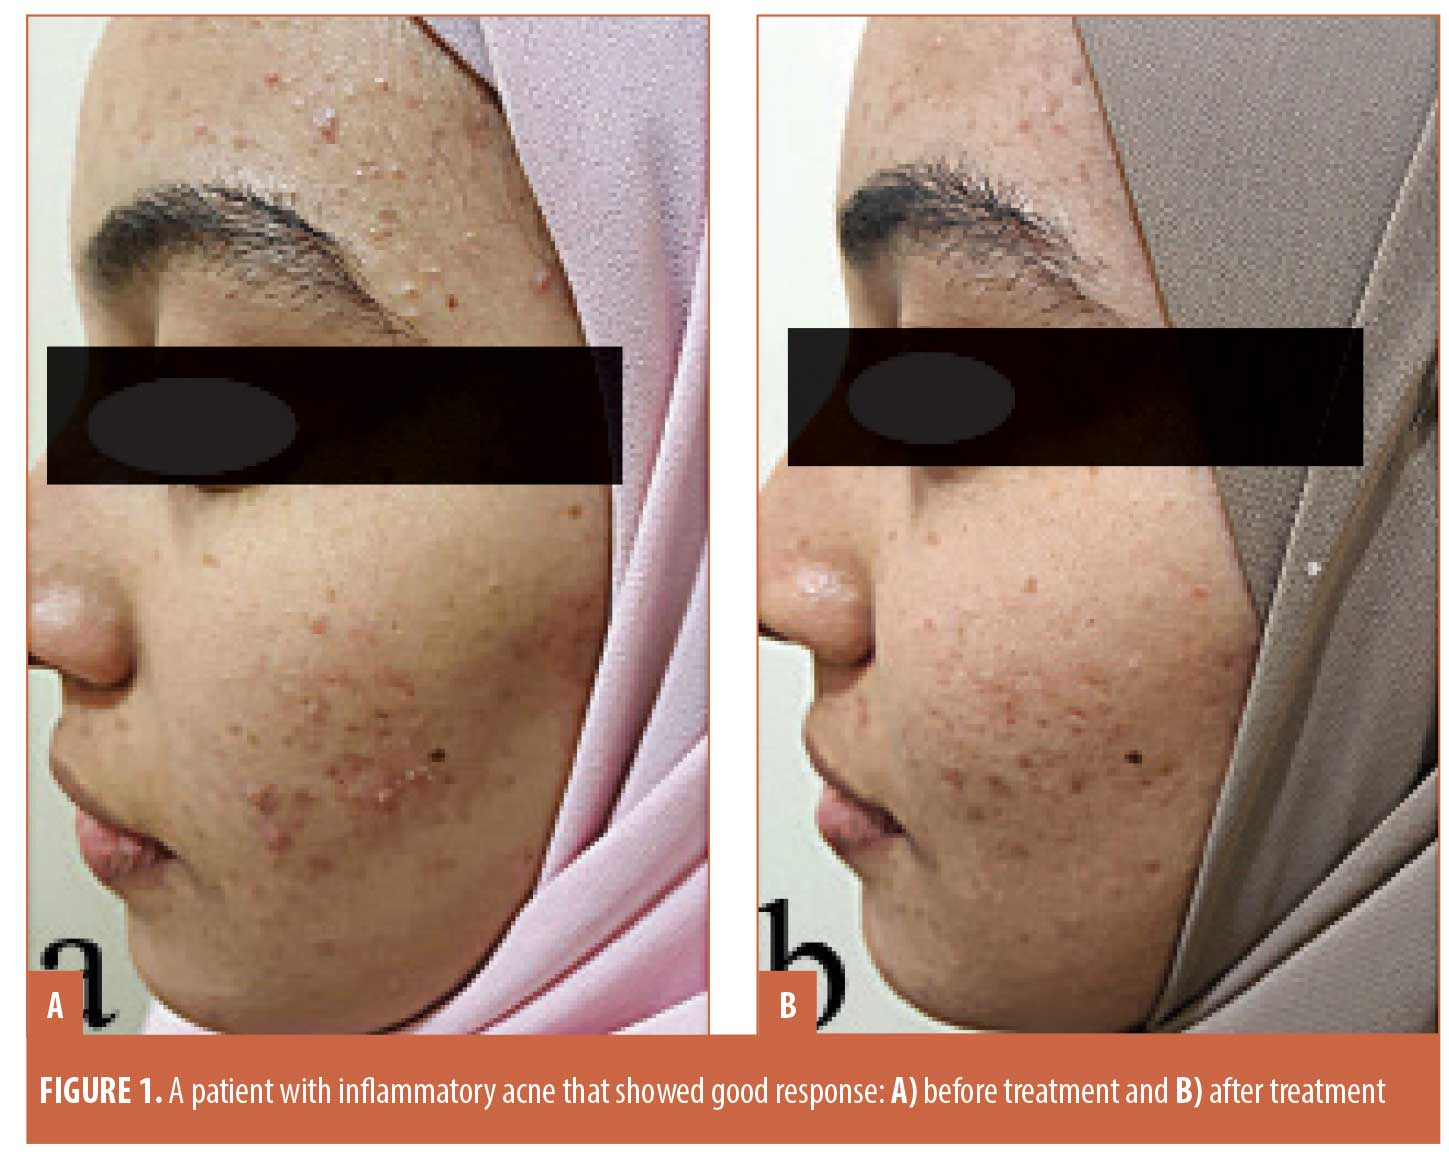 Efficacy Of Topical Timolol 0 5 In The Treatment Of Acne And Rosacea A Multicentric Study Jcad The Journal Of Clinical And Aesthetic Dermatology